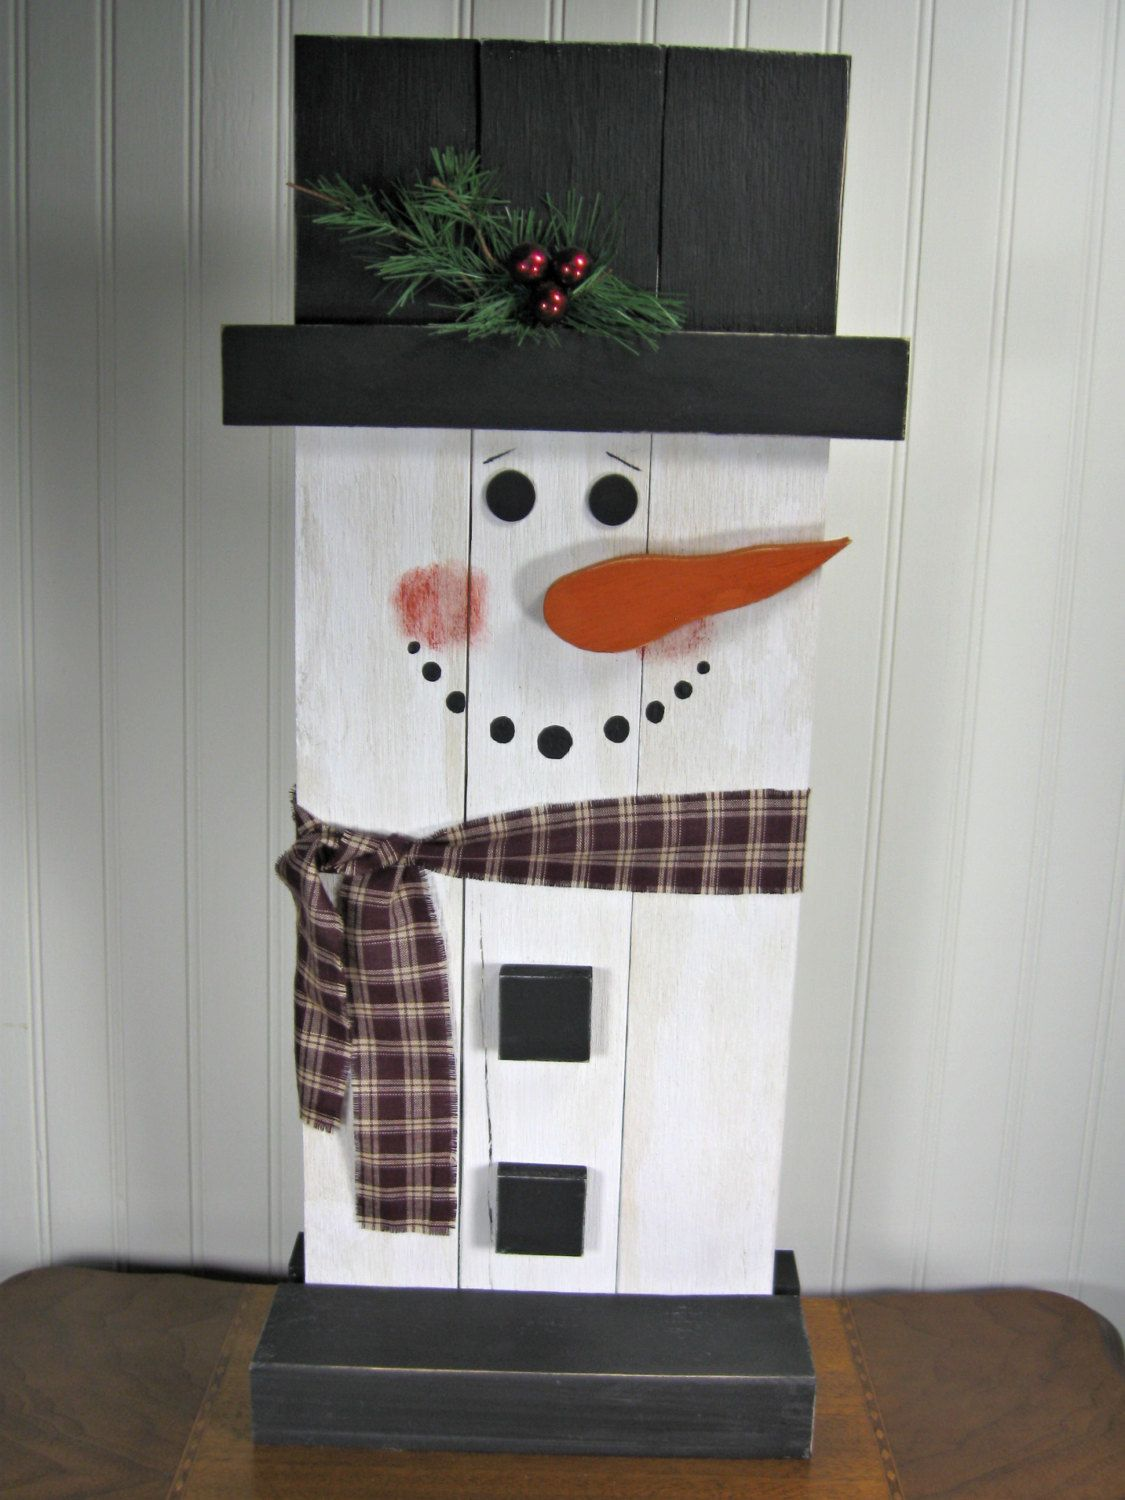 Stand- Wooden Snowman Christmas Decoration Holidays